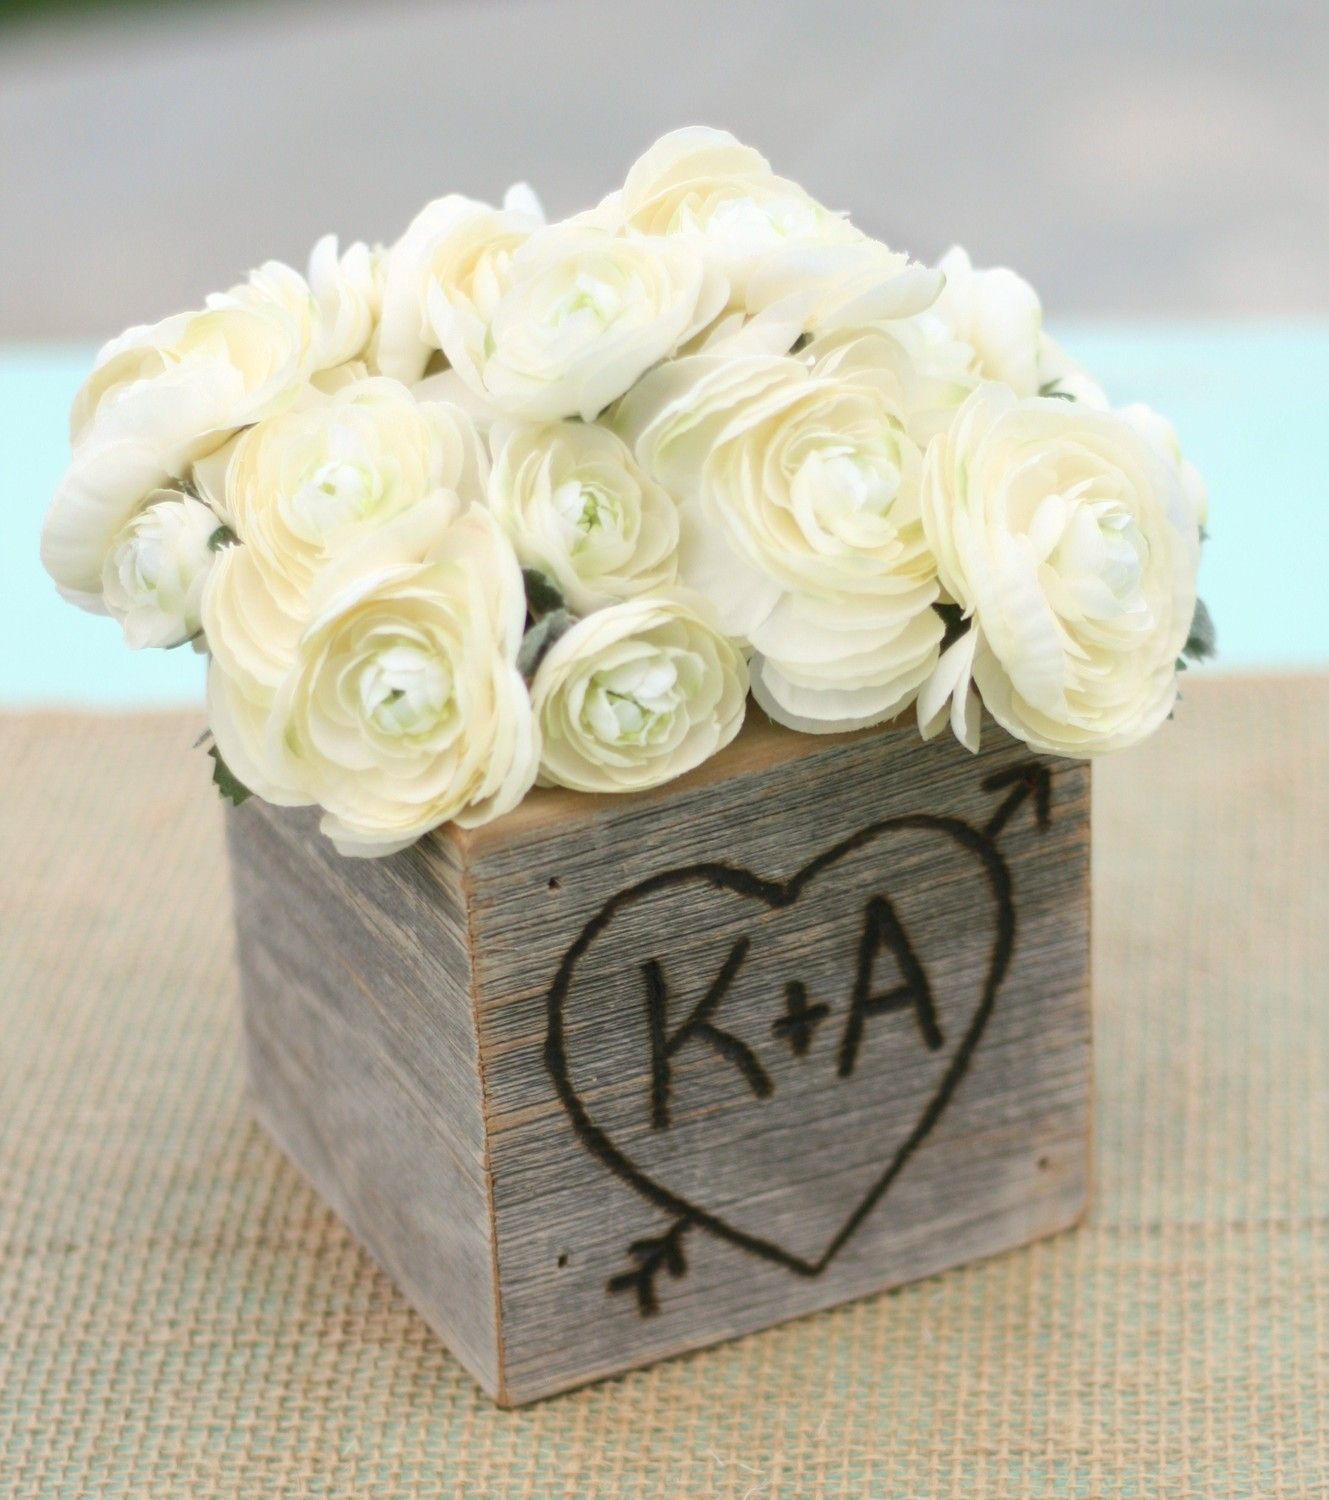 Rustic barn wood planter vase wedding shabby chic personalized item rustic barn wood planter vase wedding shabby chic personalized item e10528 1999 junglespirit Image collections